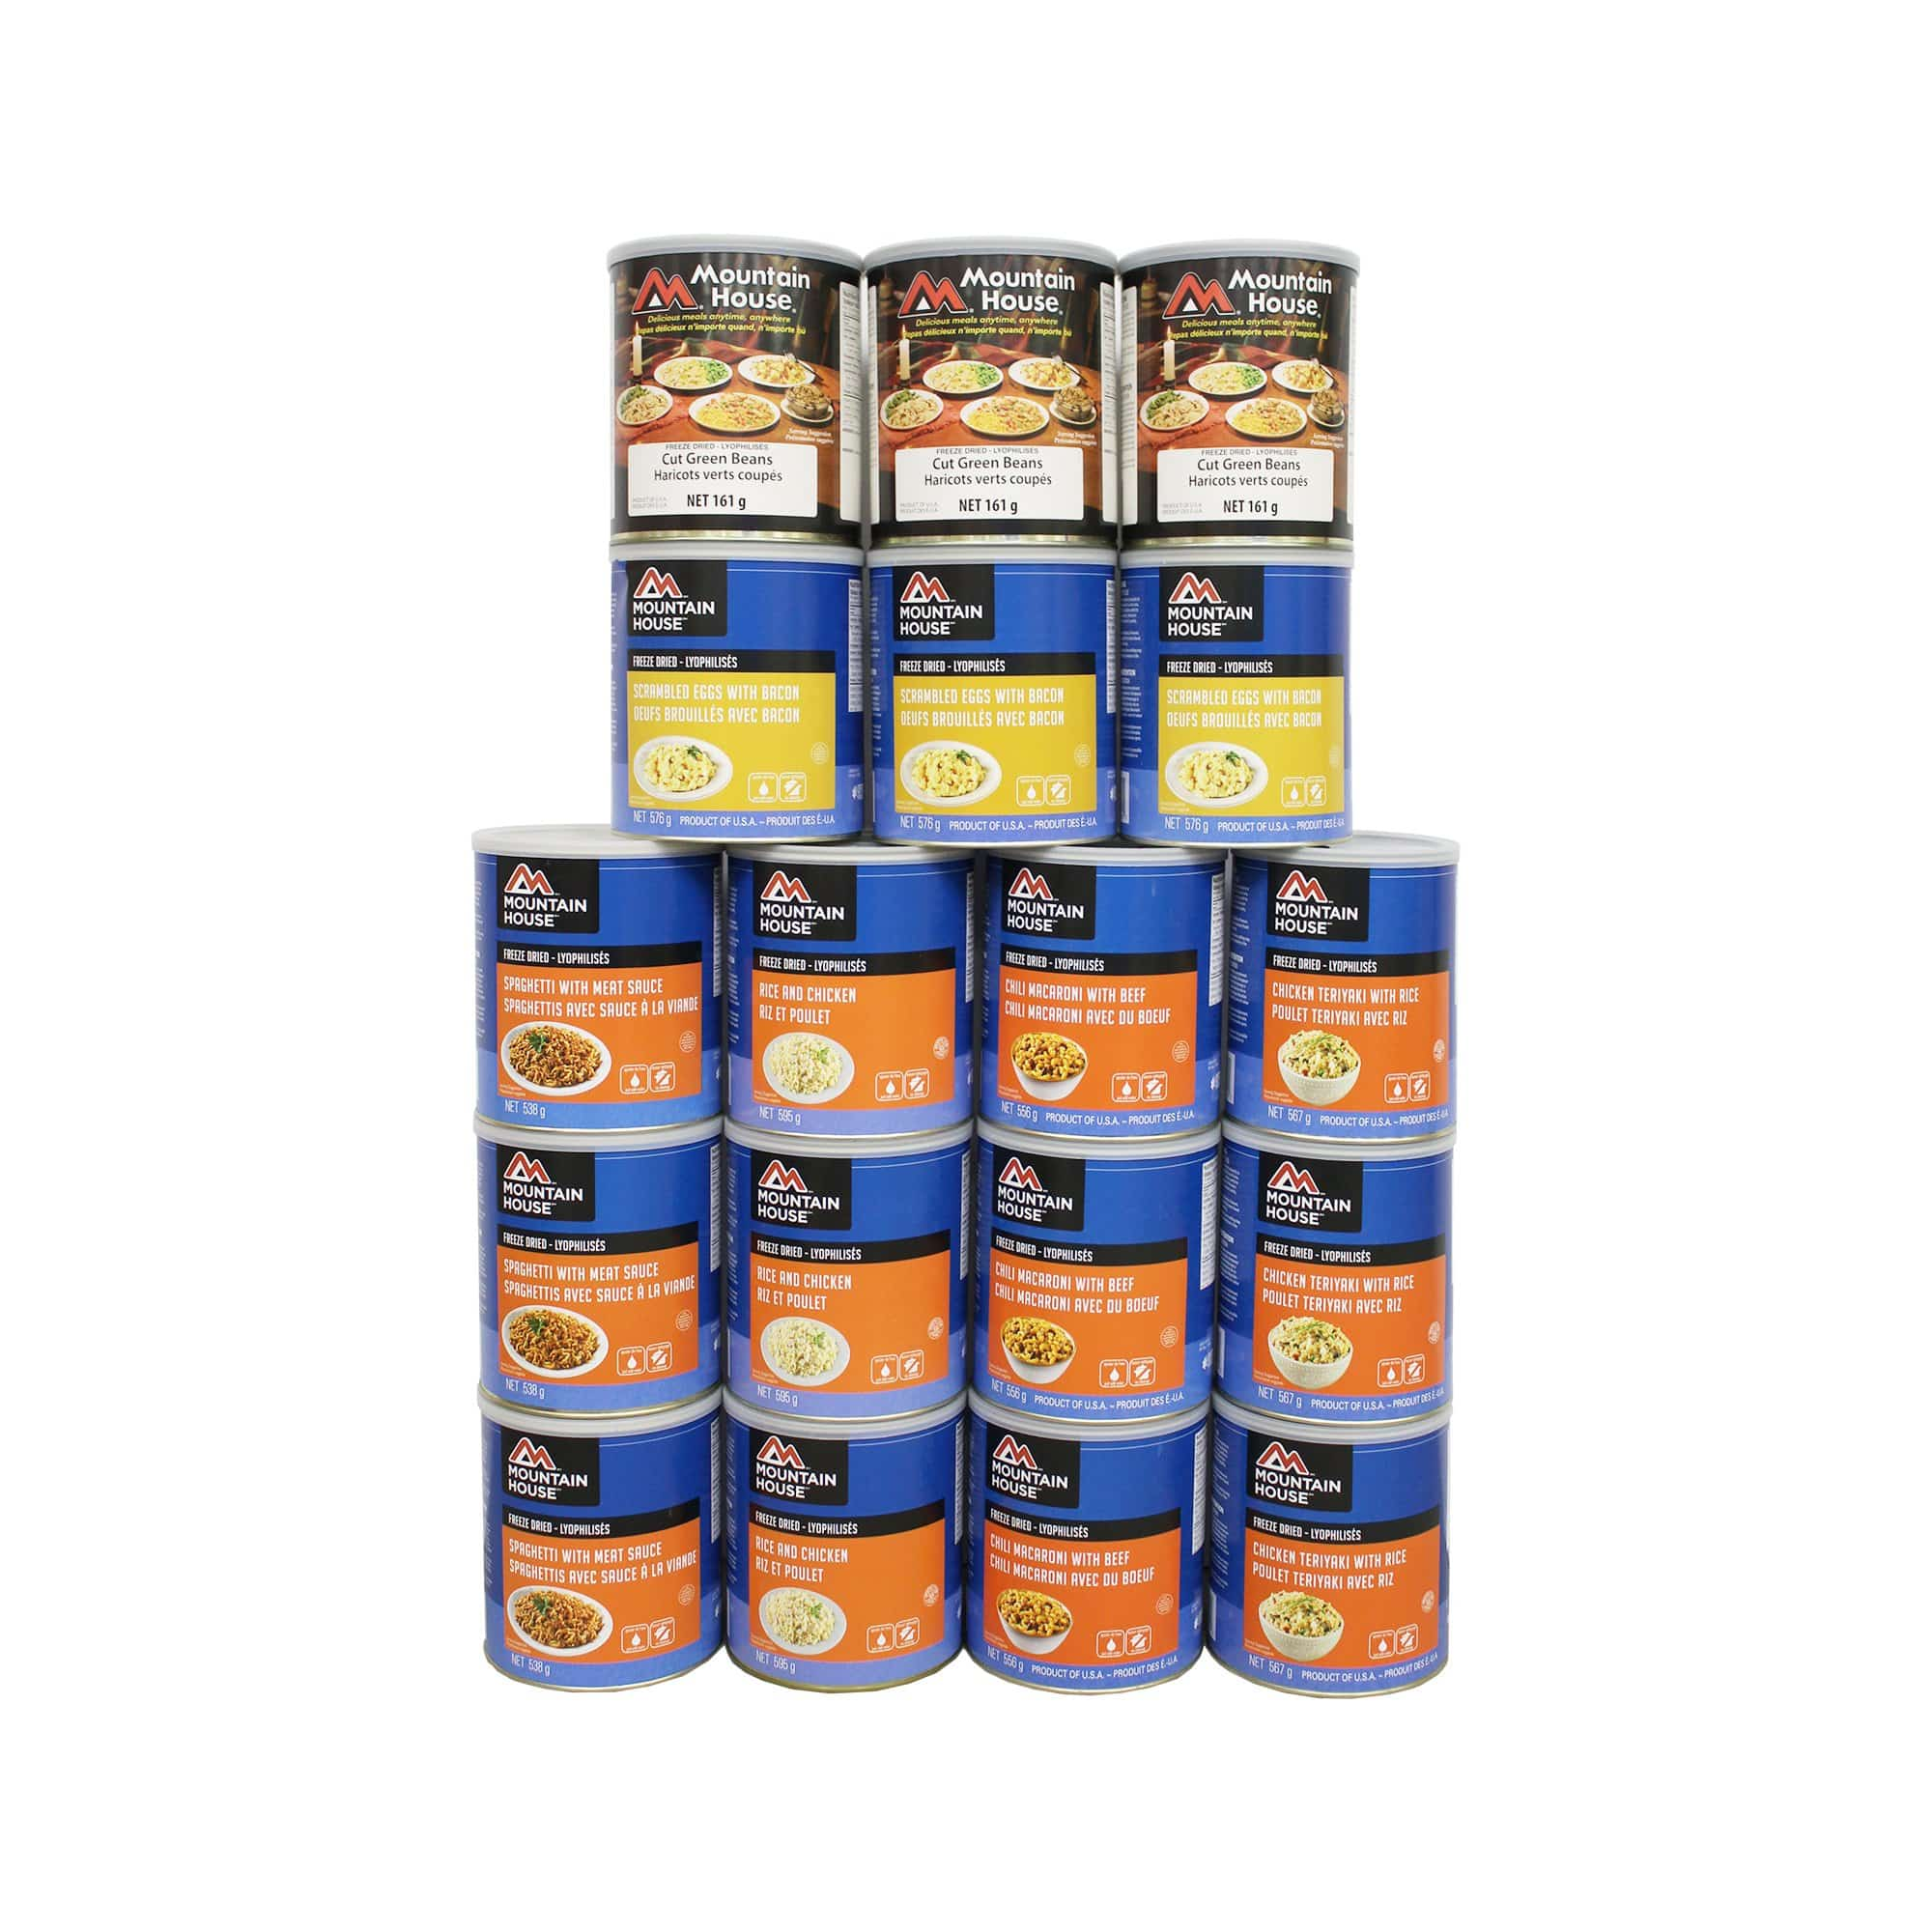 194 Serving Breakfast, Lunch and Entree Package - 18 cans (Mountain House®)